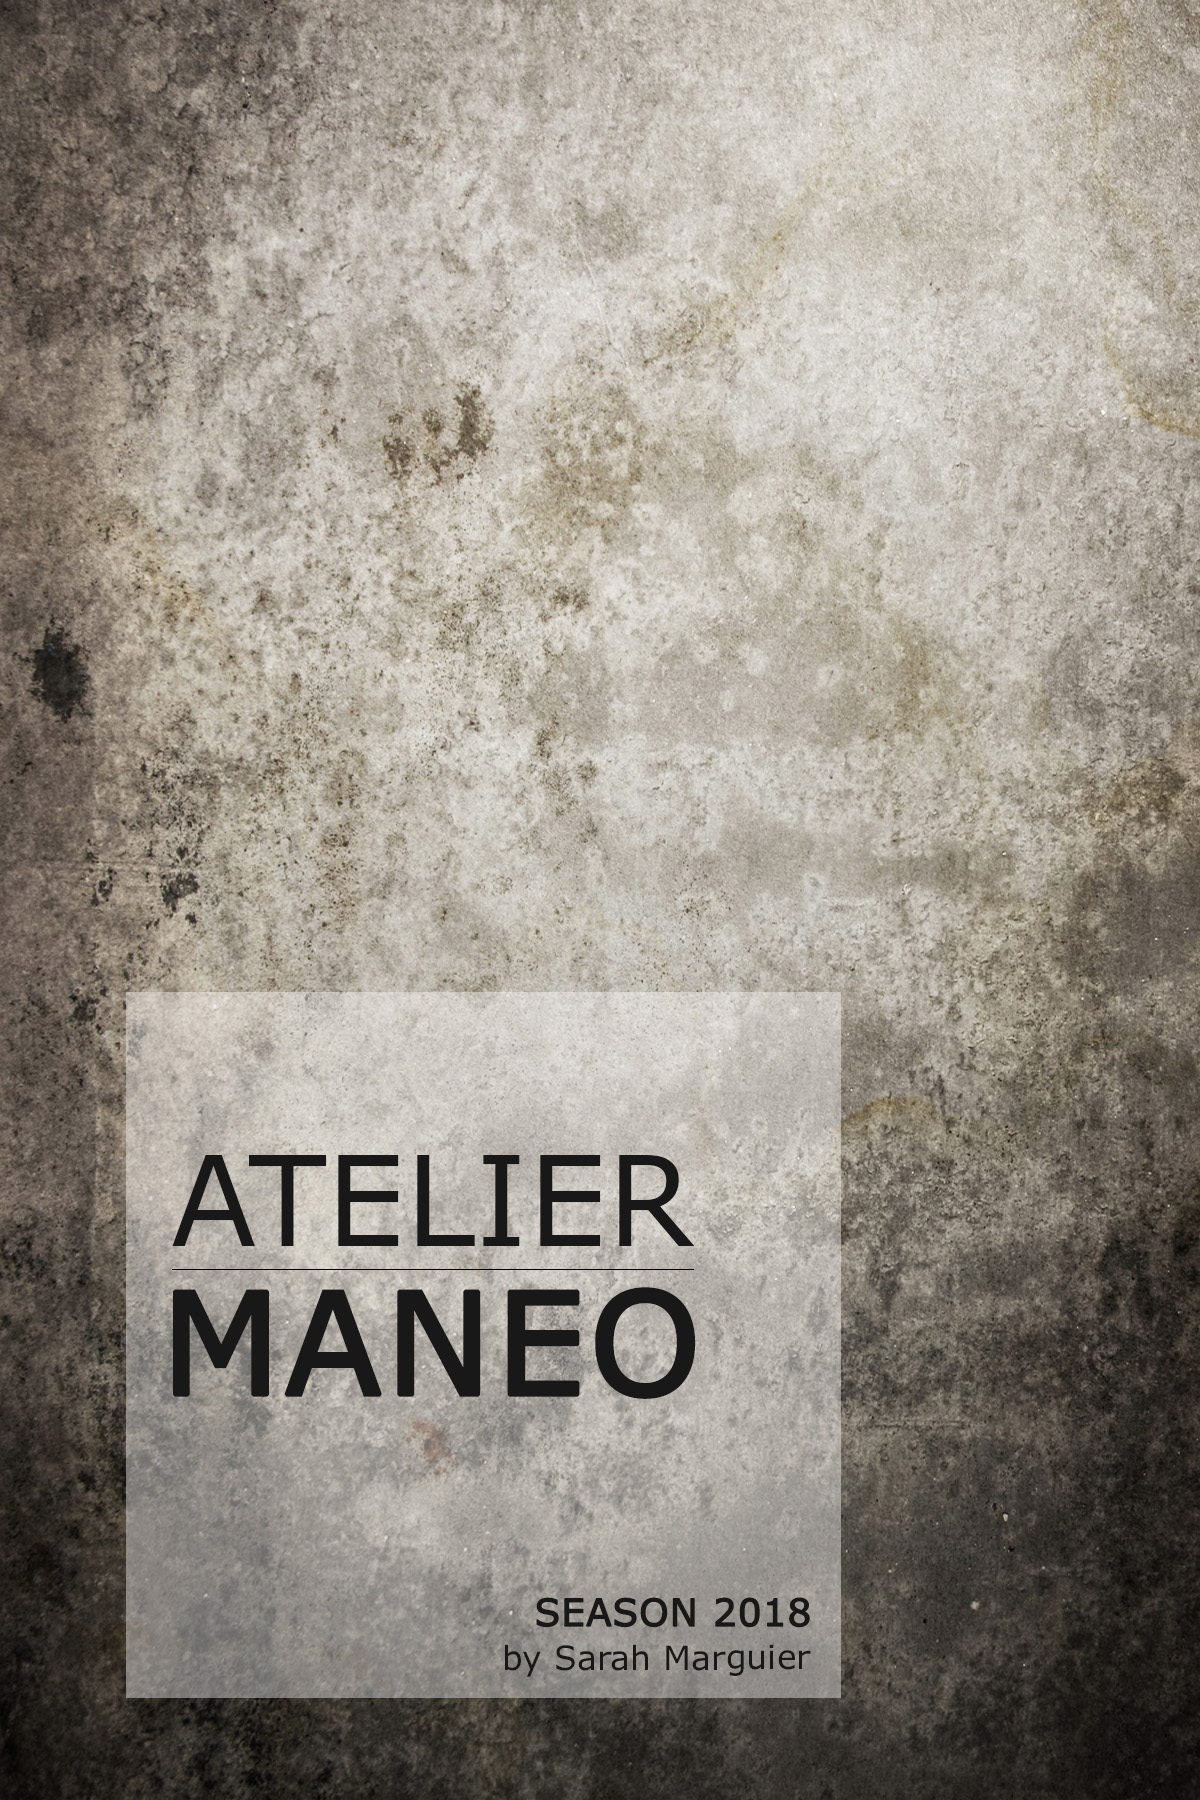 ATELIER MANEO - JULY 6 - SEPTEMBER 15